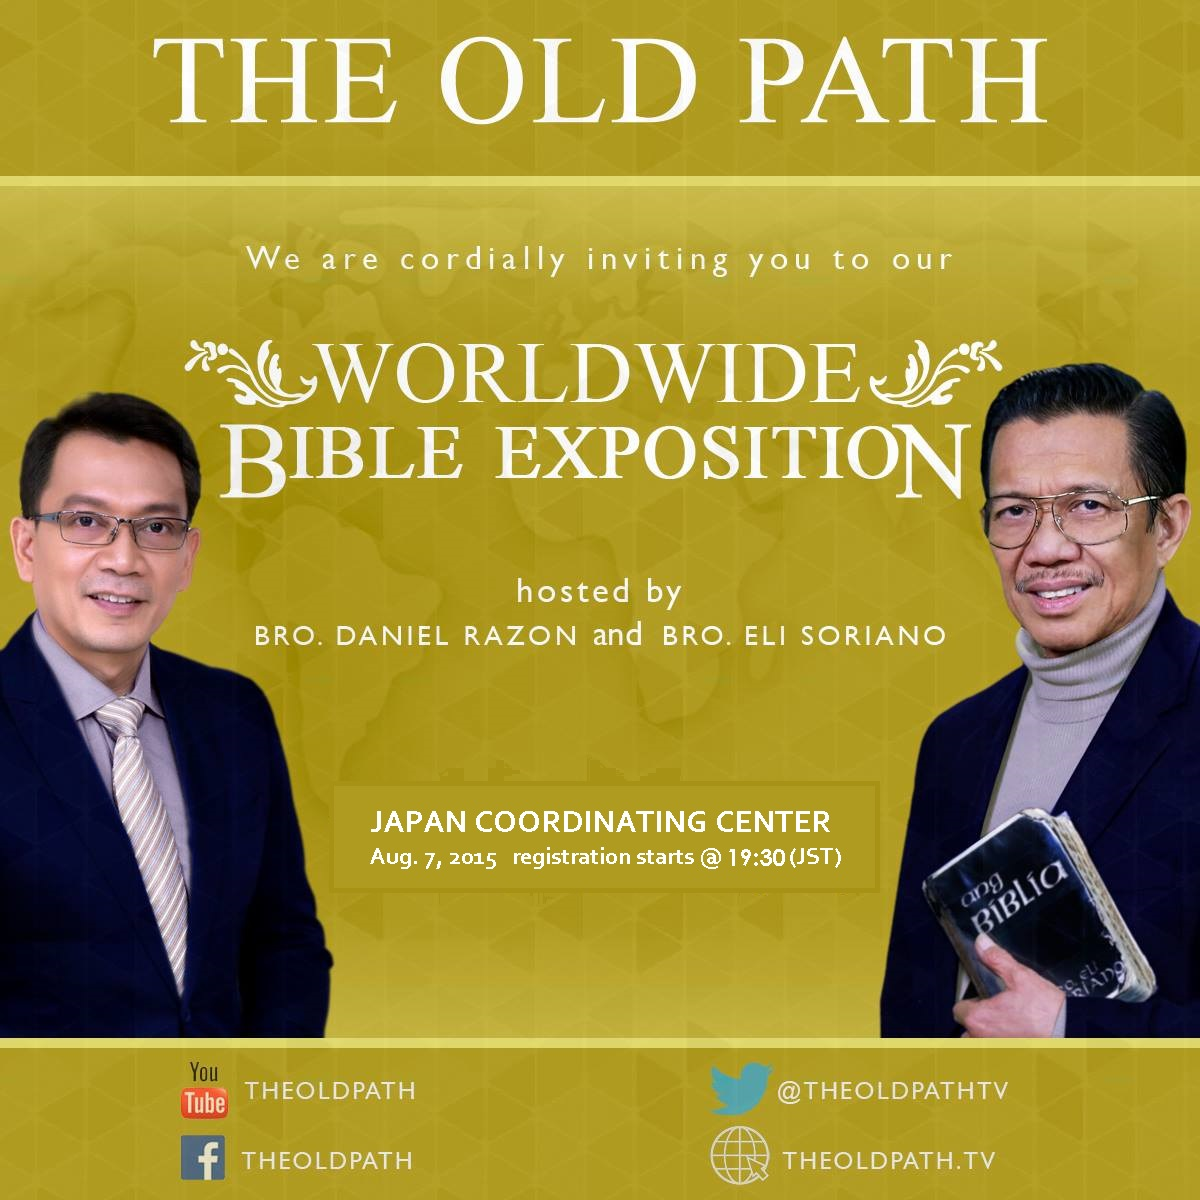 ang dating daan bible exposition live stream Ang dating daan itanong mo kay live events bagong video bakit feeding the spiritually starving people with god's word from the bible #blamenotgodforpoverty.